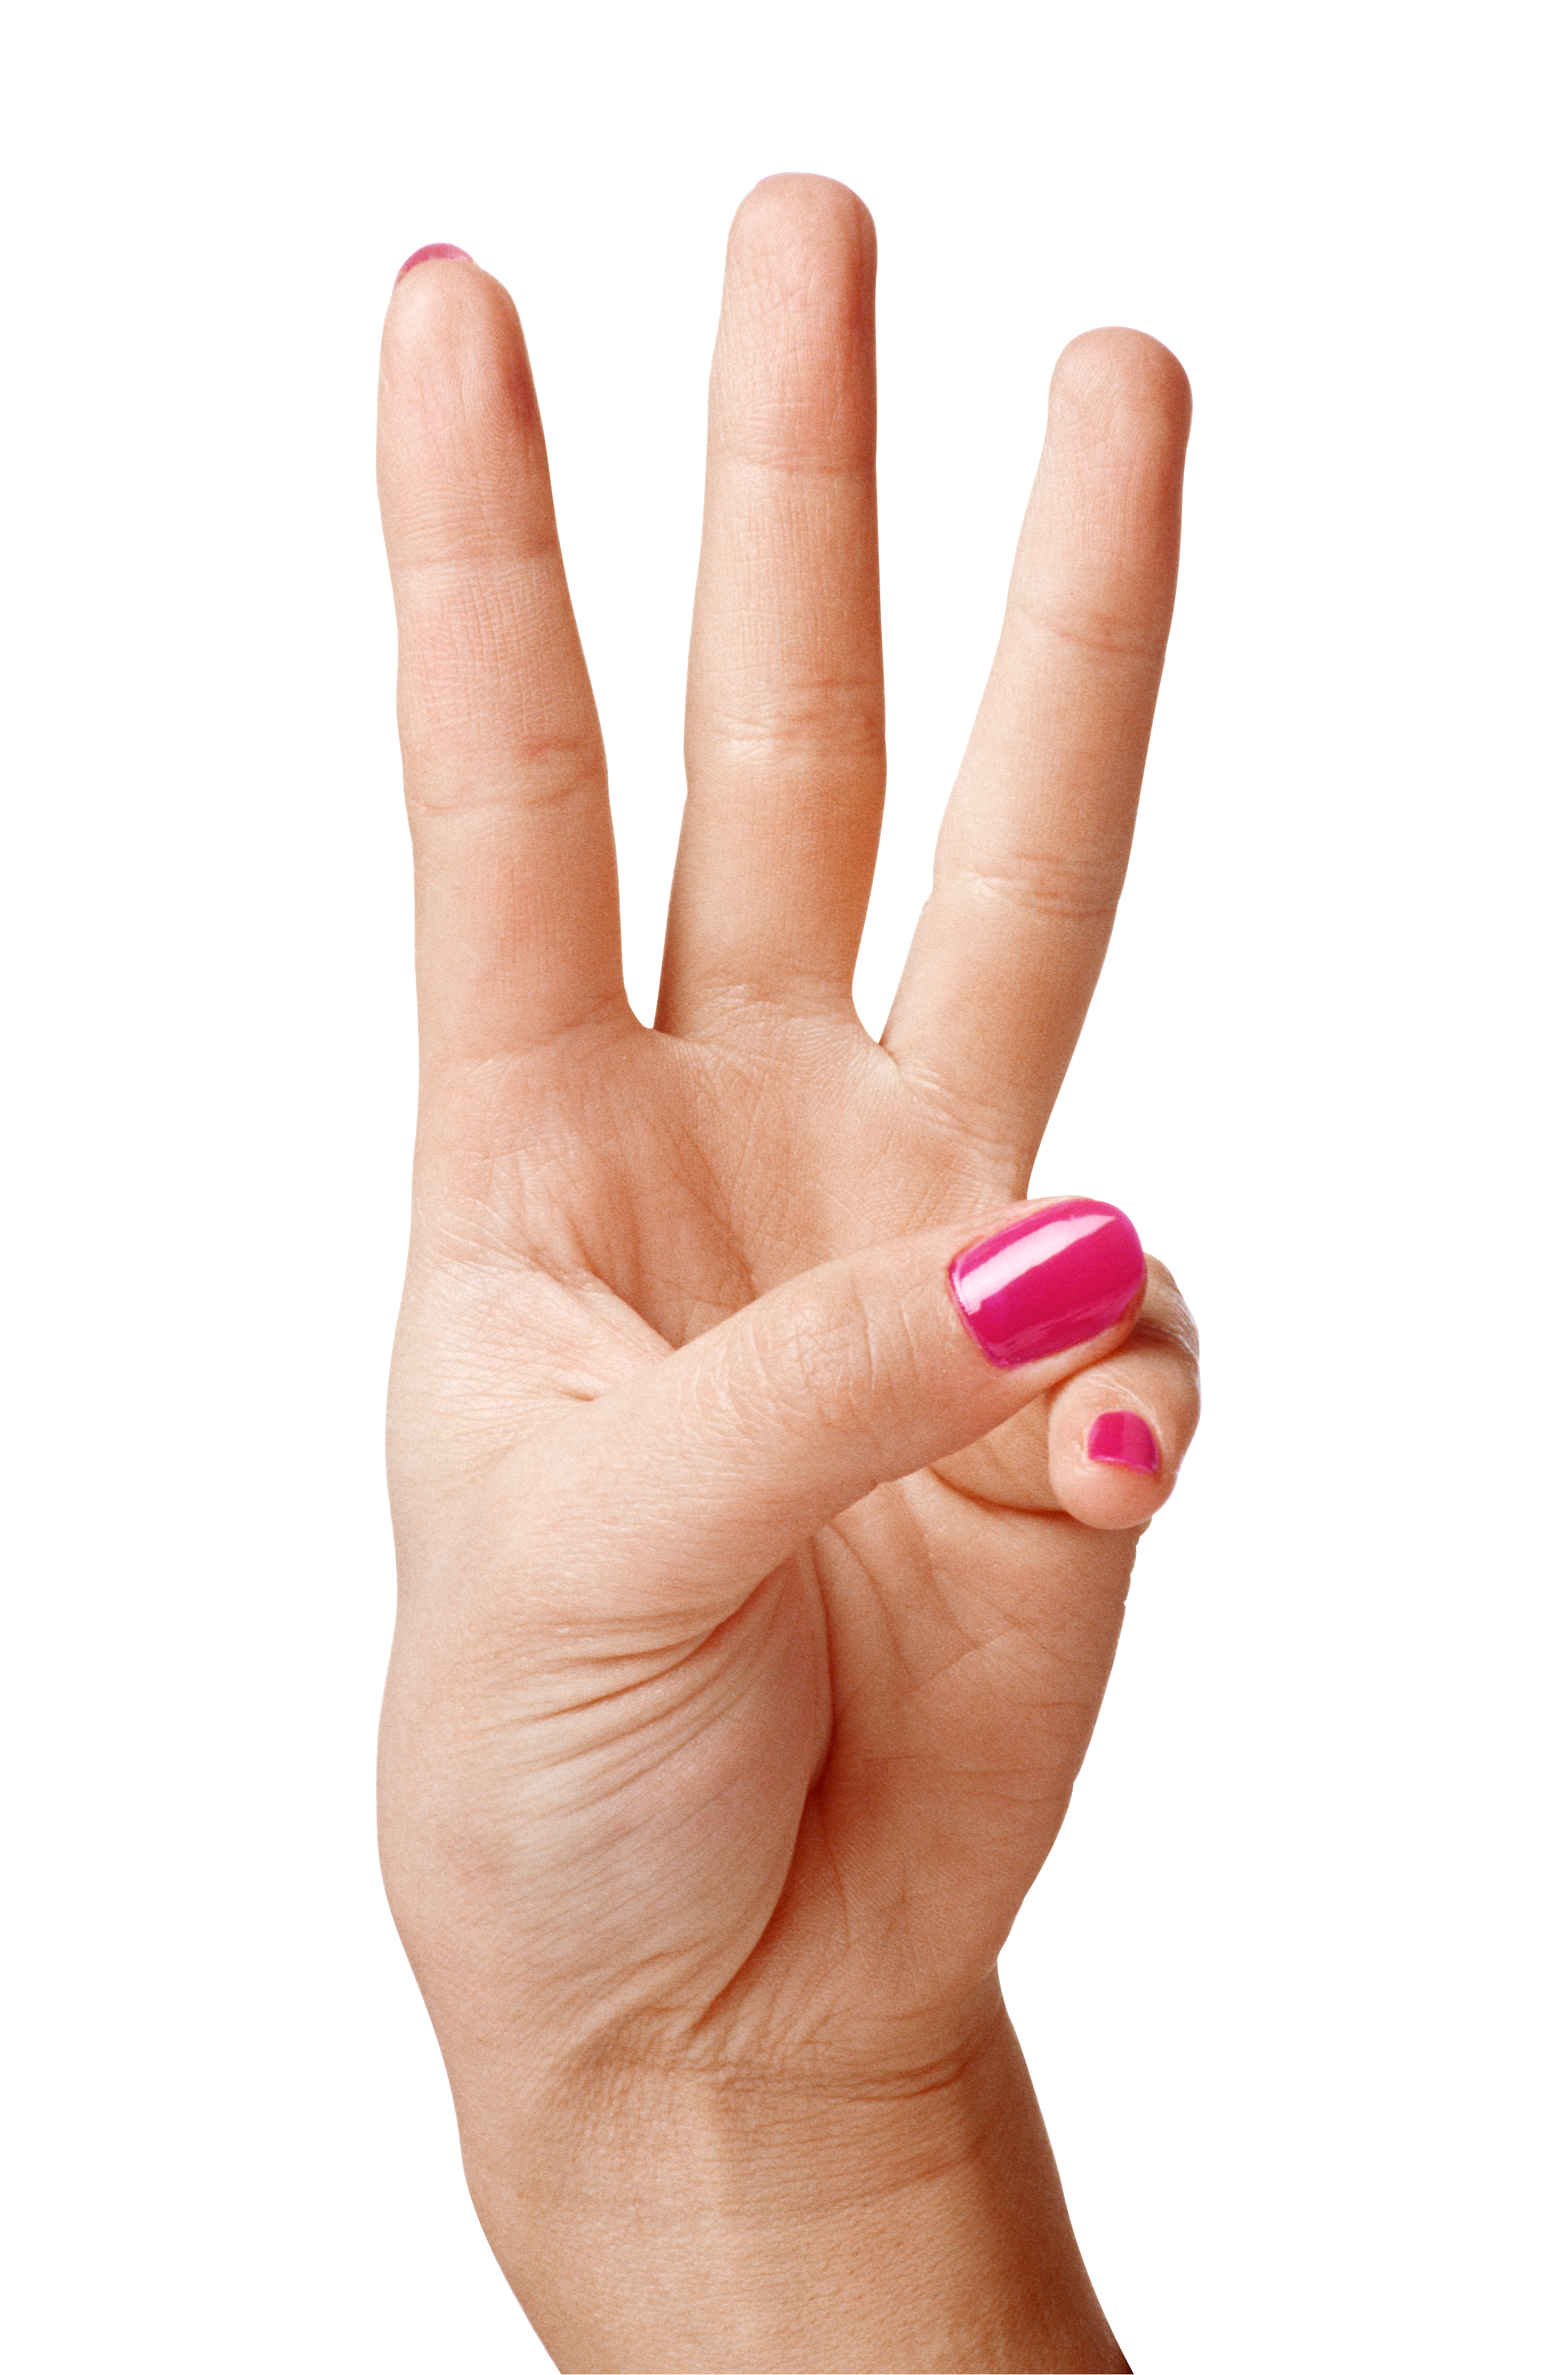 graphic black and white download Finger transparent three. Hand showing fingers png